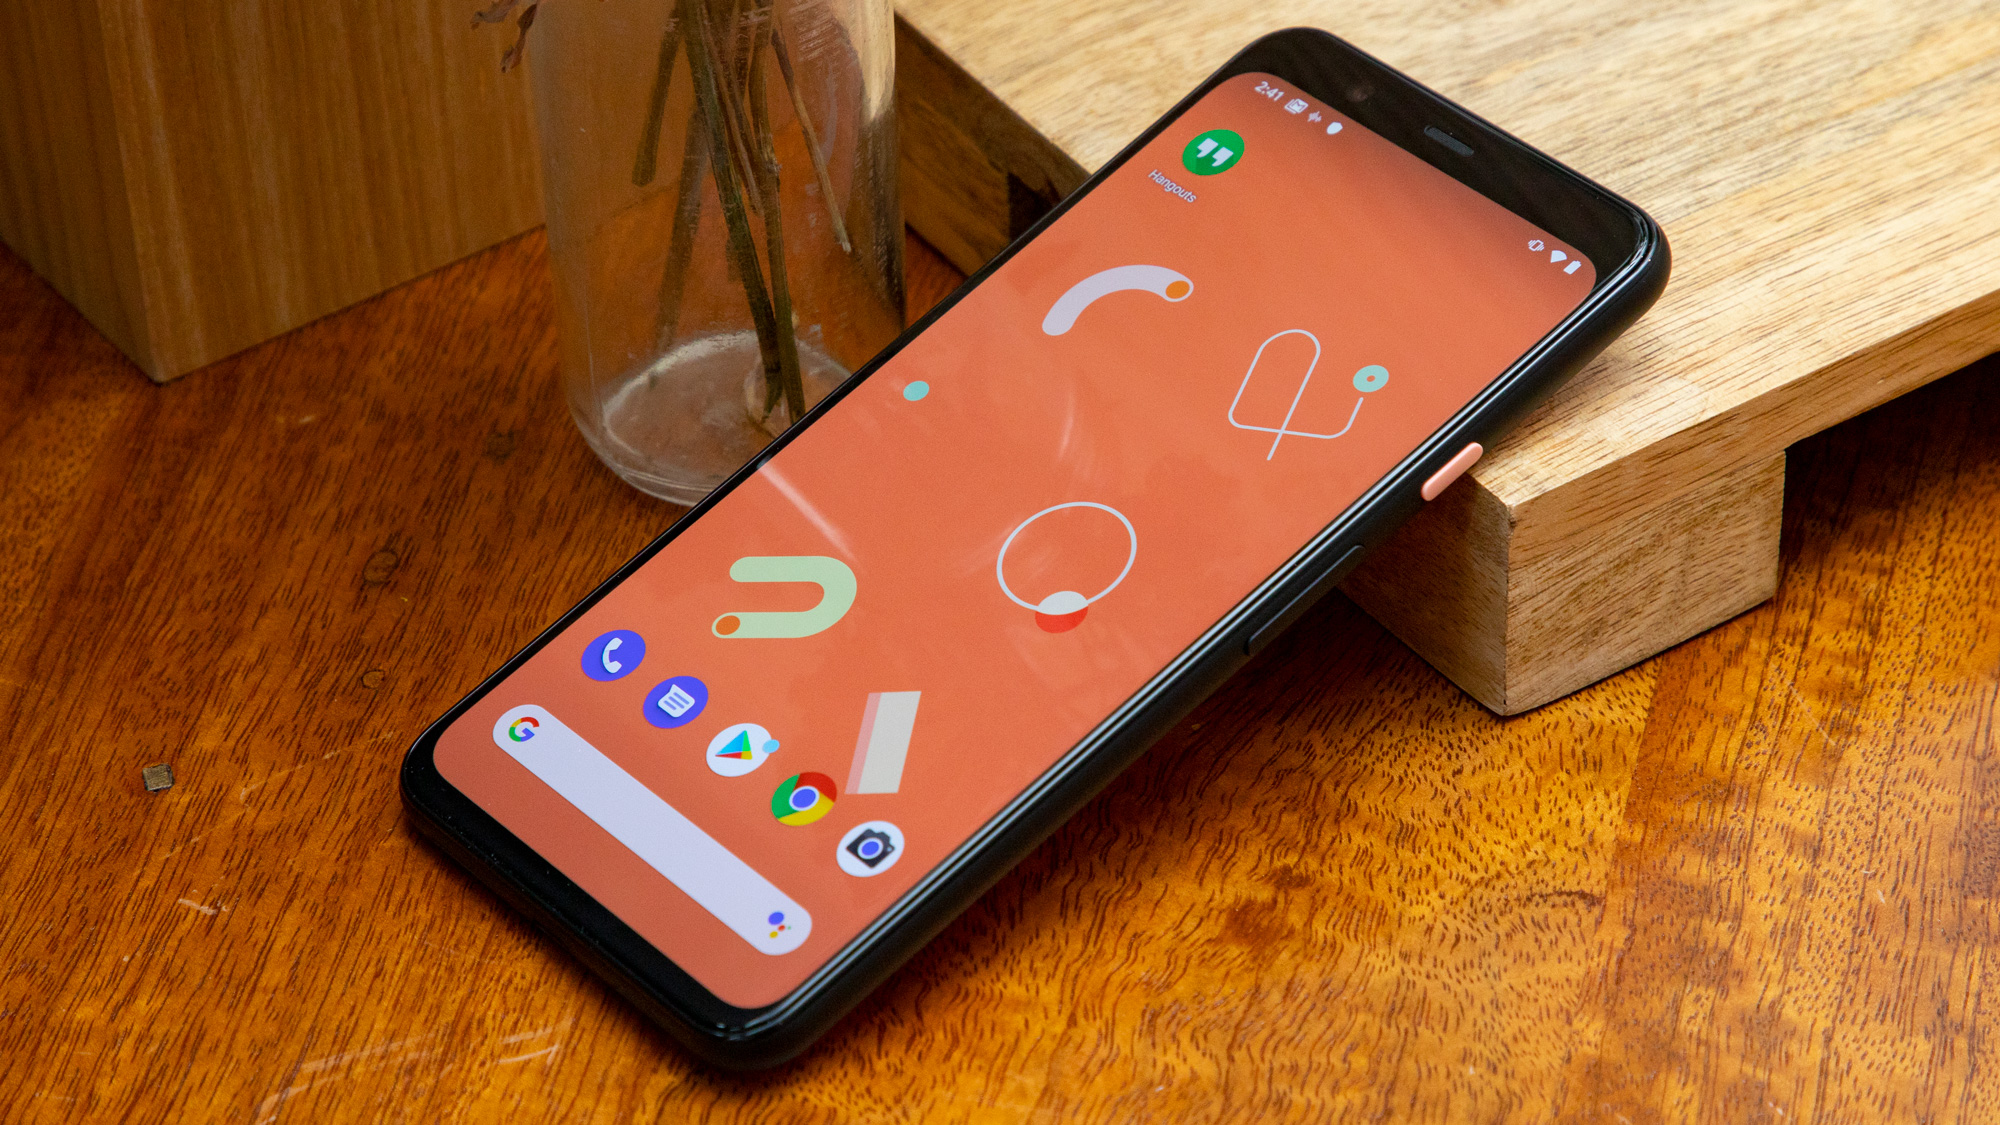 There's a Pixel 4 XL, but will there be a Pixel 5 XL?